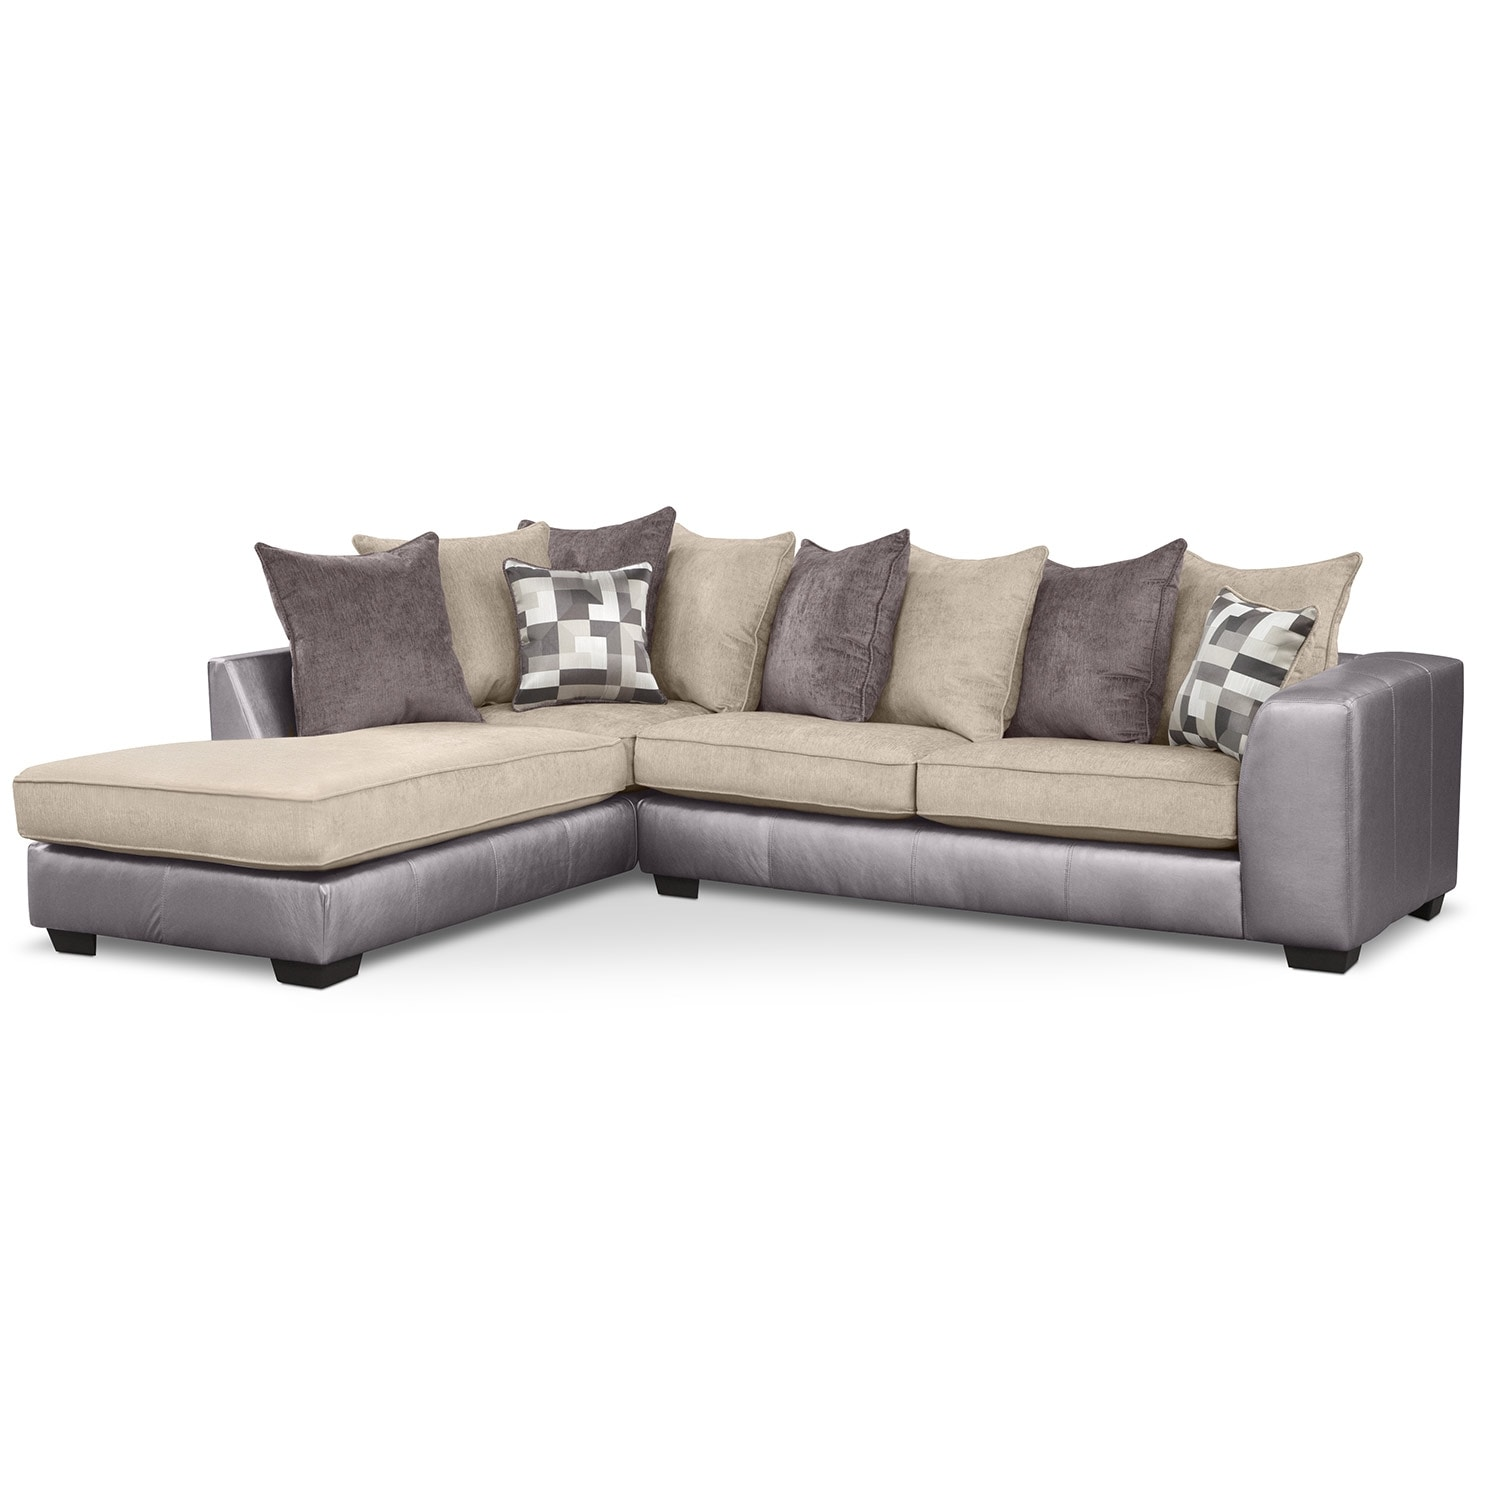 [Montero II 2 Pc. Sectional (Reverse)]